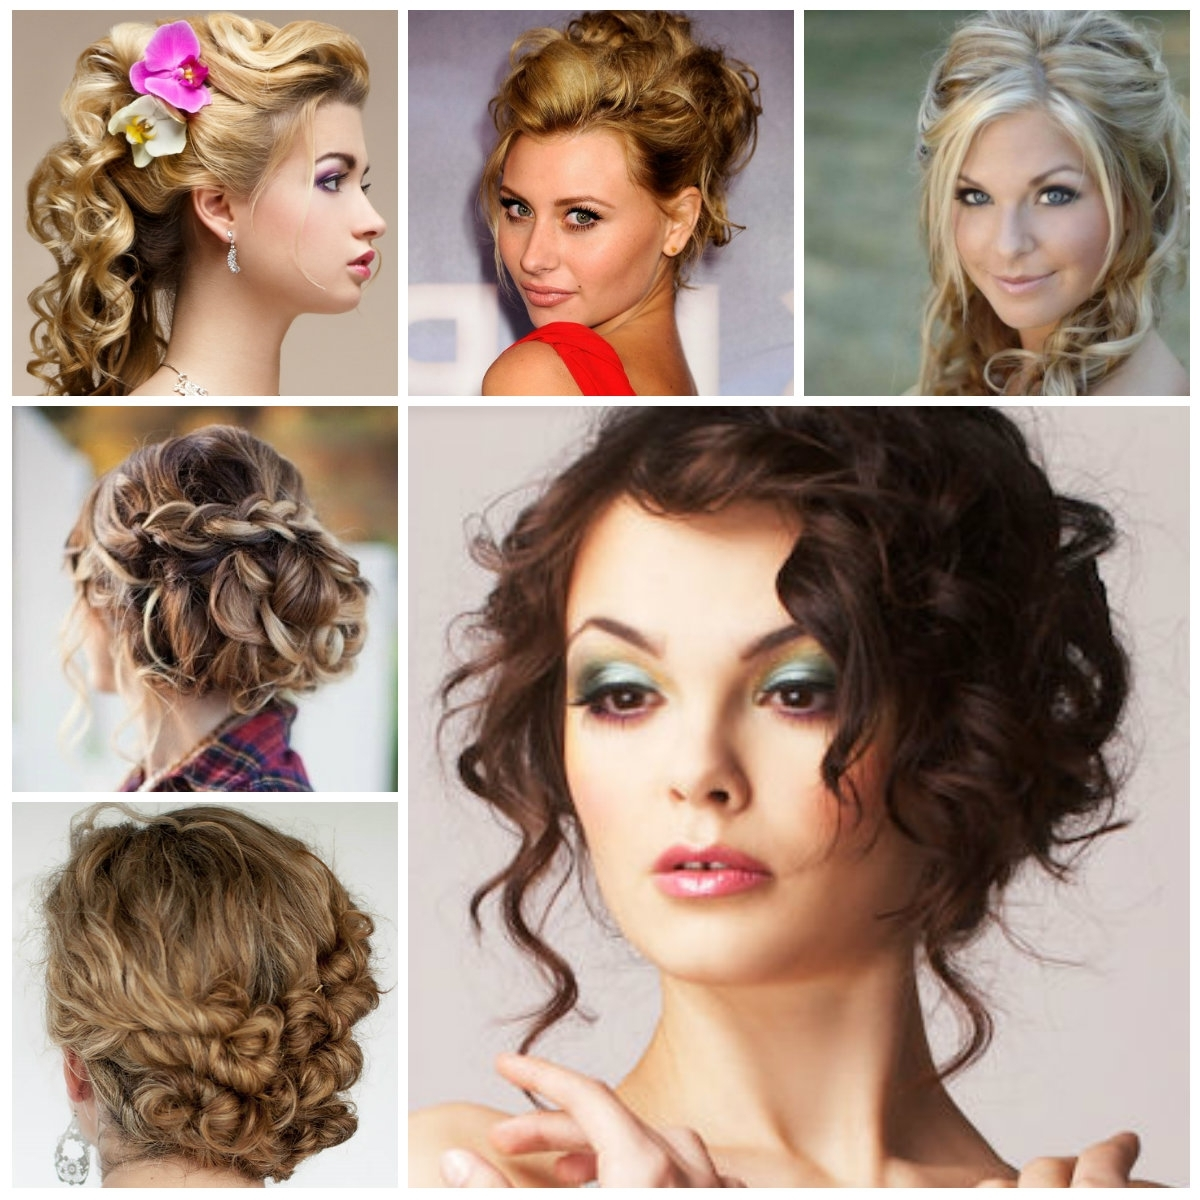 Hairstyles Updo Pretty Curly Updo Hairstyles For Haircuts Hairstyles In Curly Updo Hairstyles (View 6 of 15)